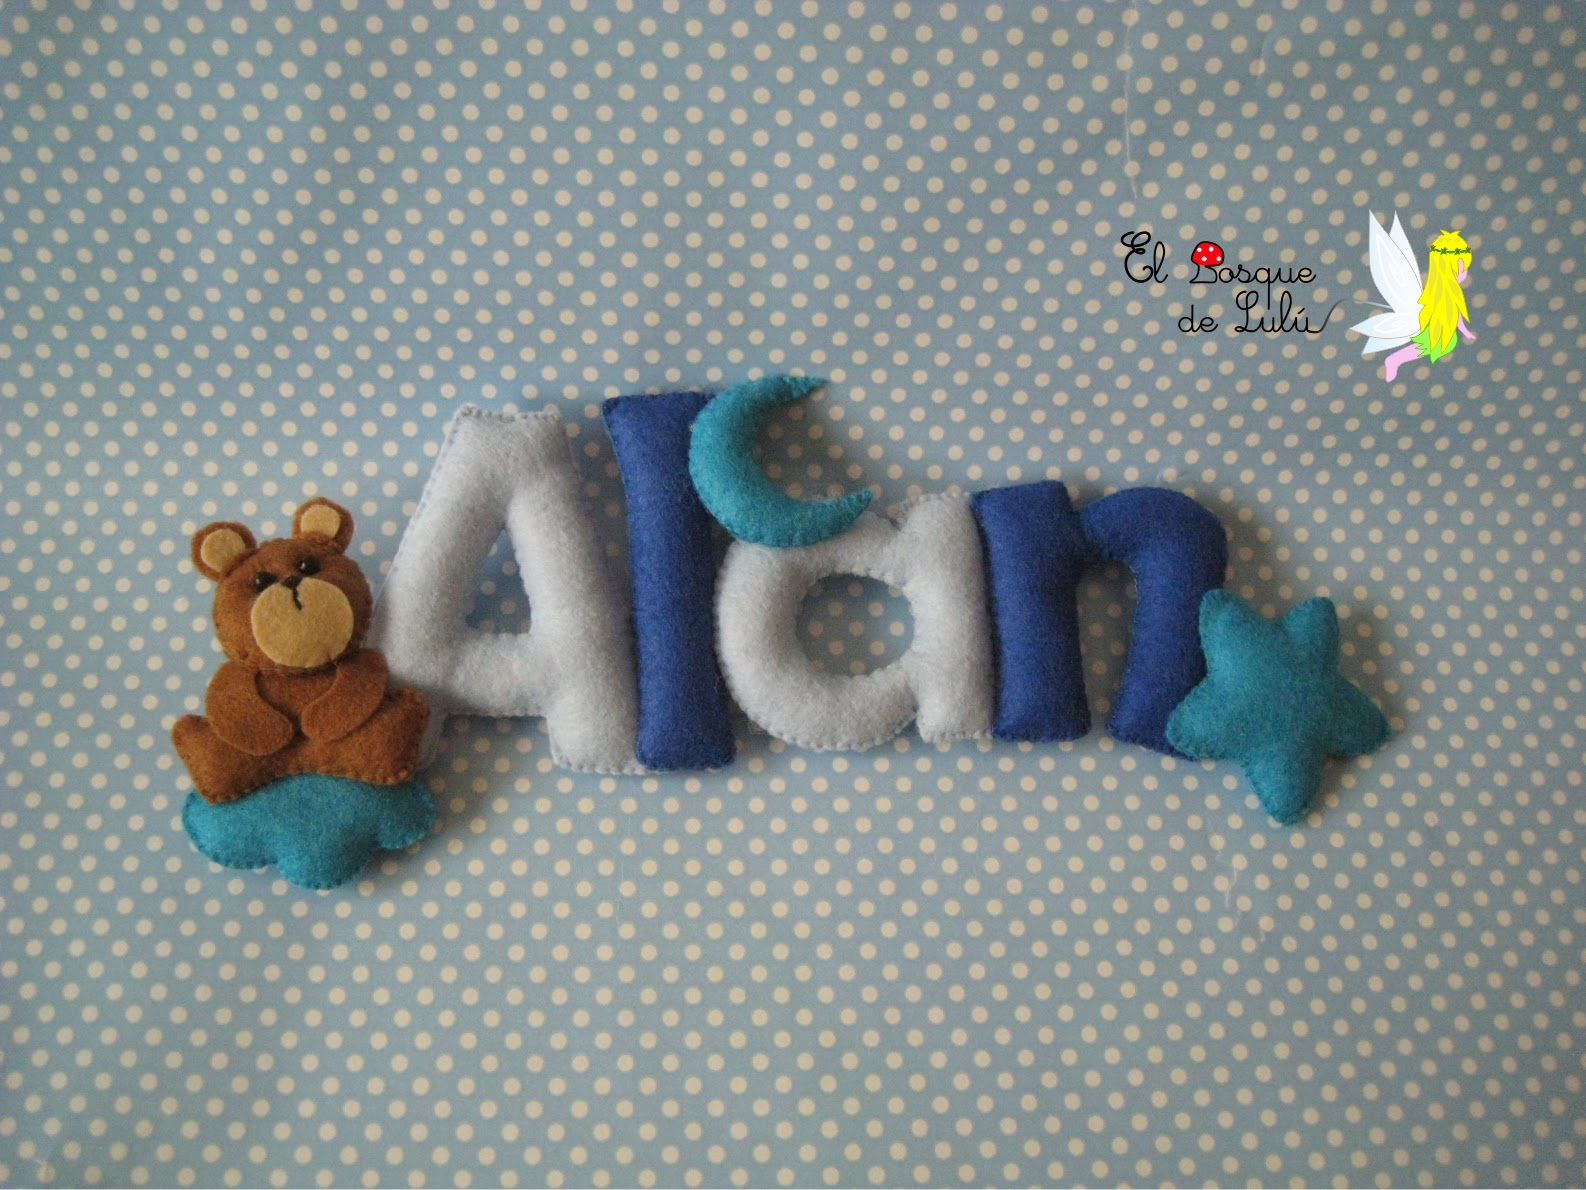 nombre-decorativo-fieltro-Alan-decoración-infantil